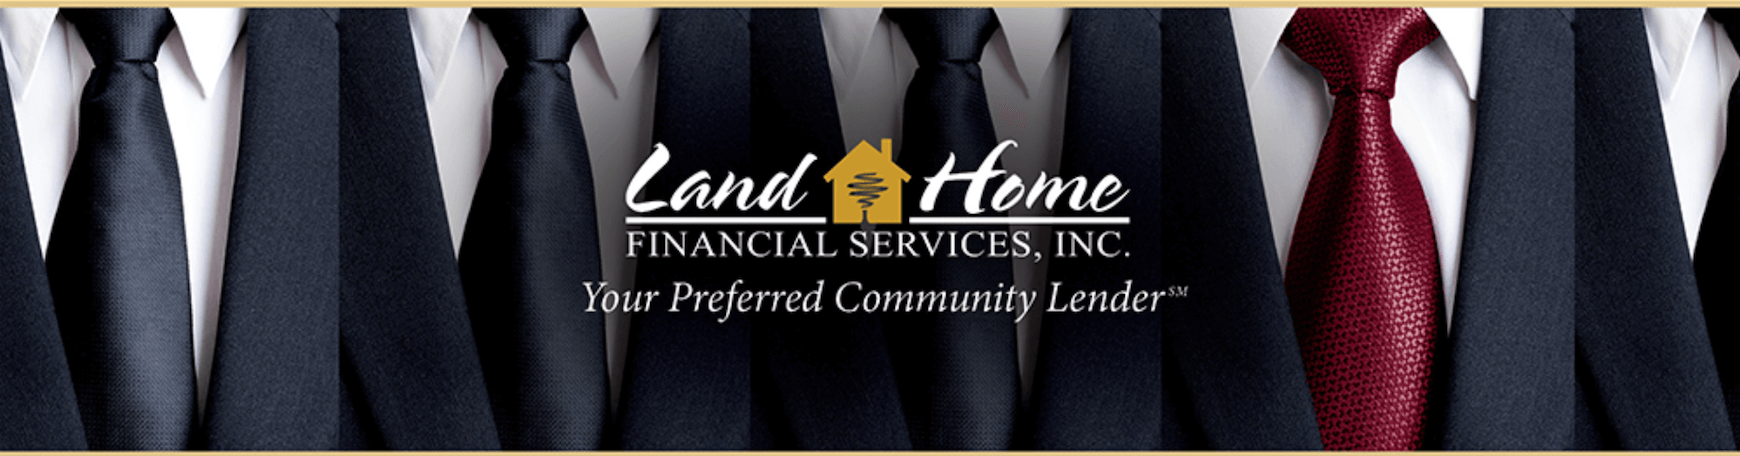 Land Home Financial's Corporate Community Lending Program